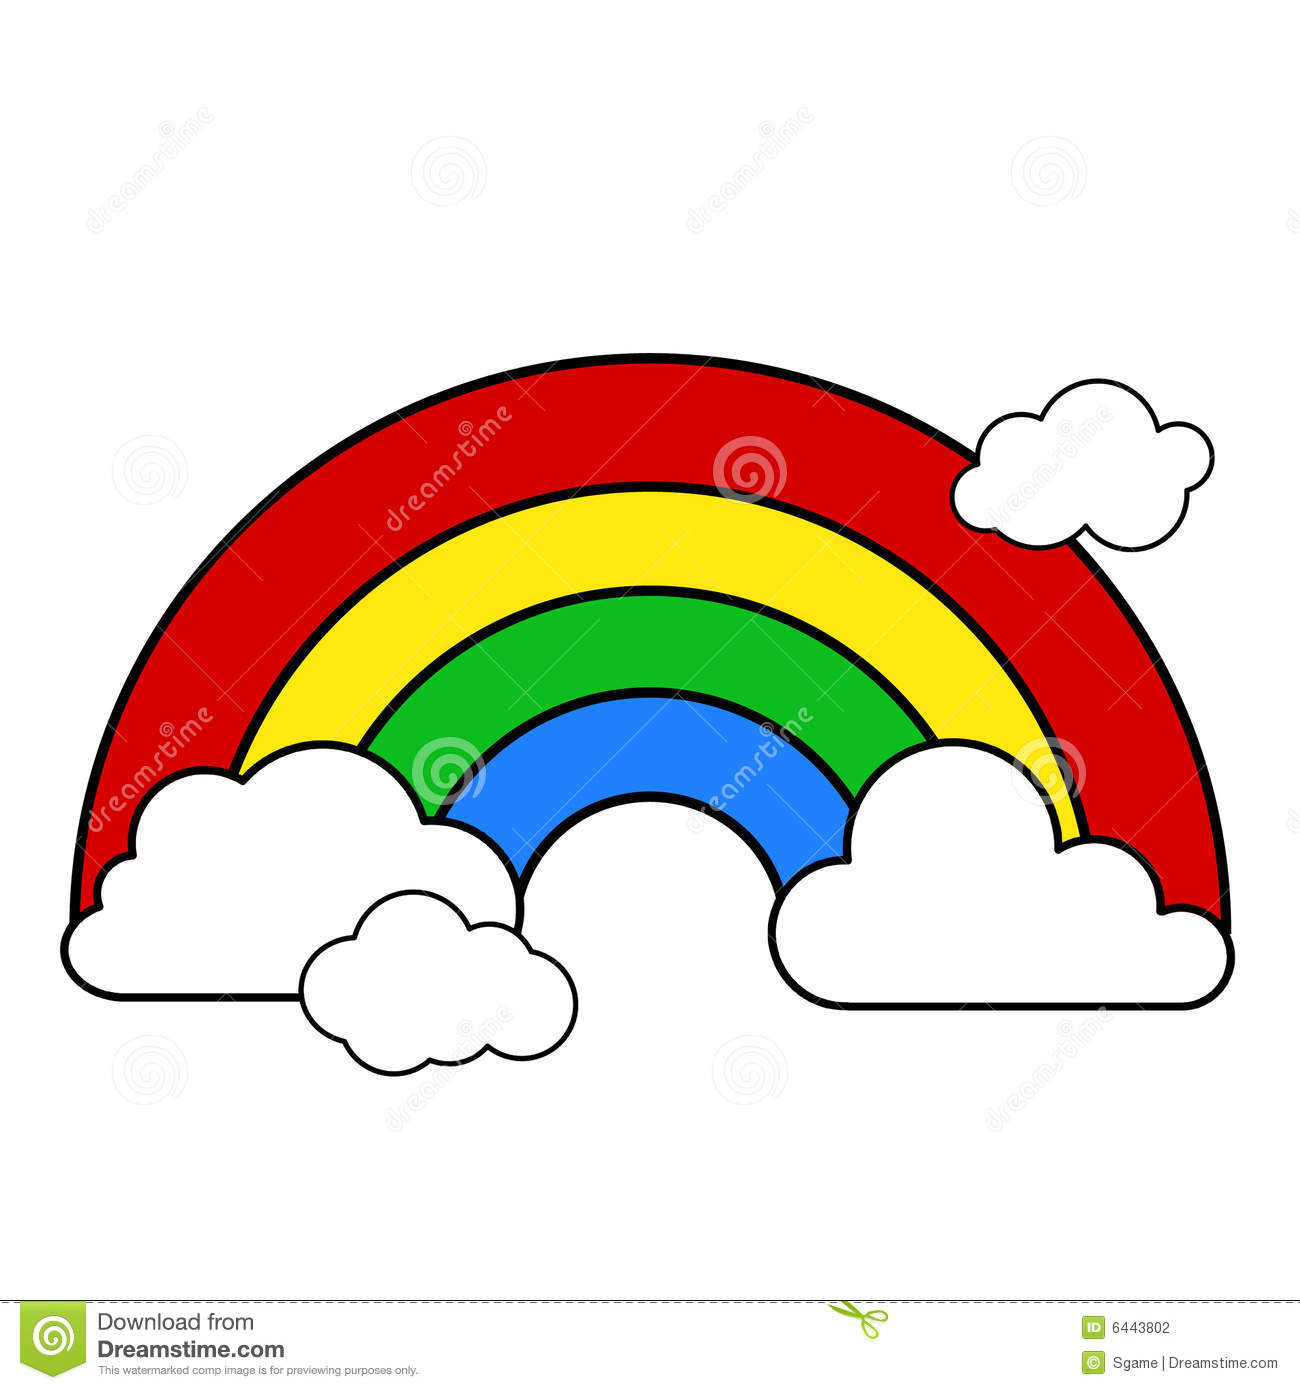 Ainbow clip art Transparent pictures on F.